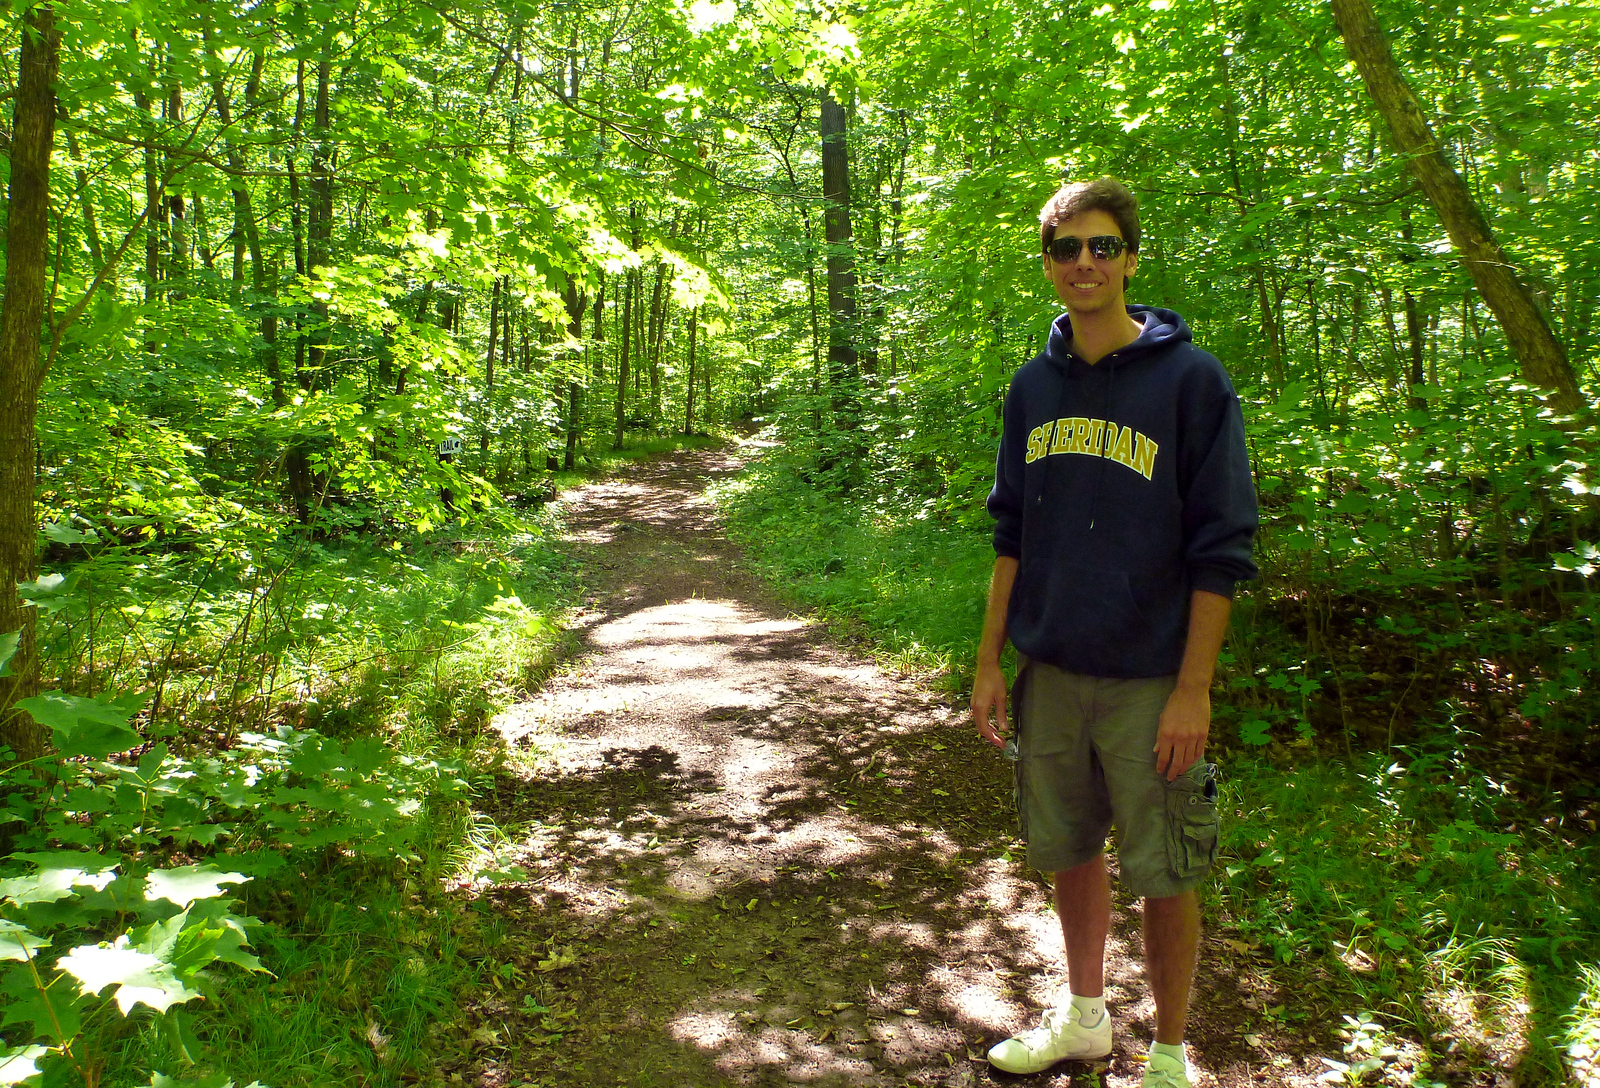 Caves in Napanee, Ontario - Hiking Trails in Kingston